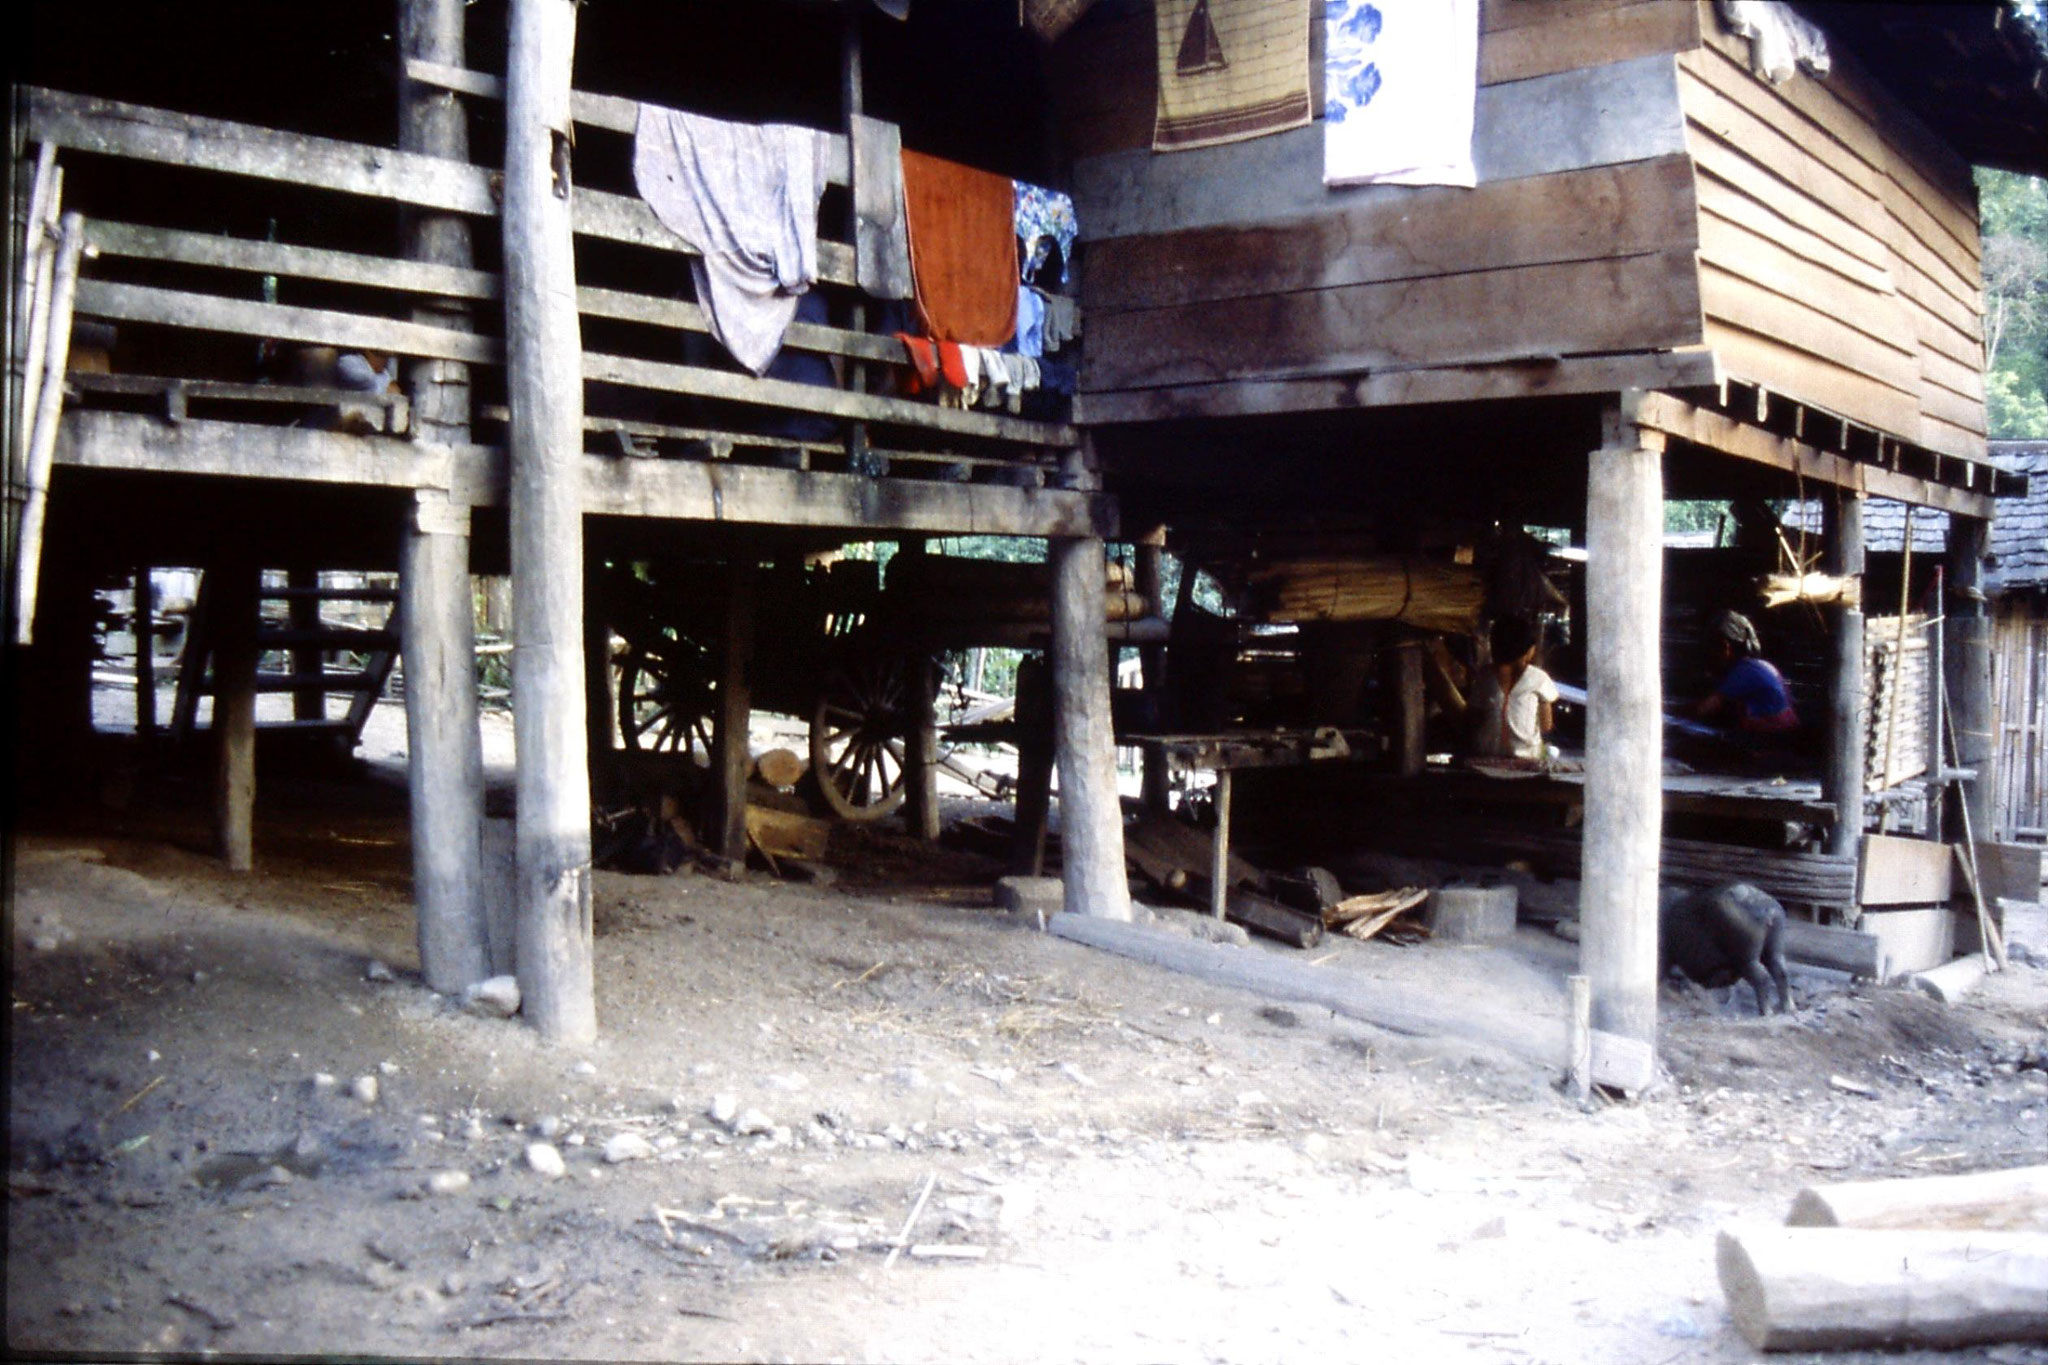 12/6/1990: 35: Trek - Hue Kom Karen village weaving